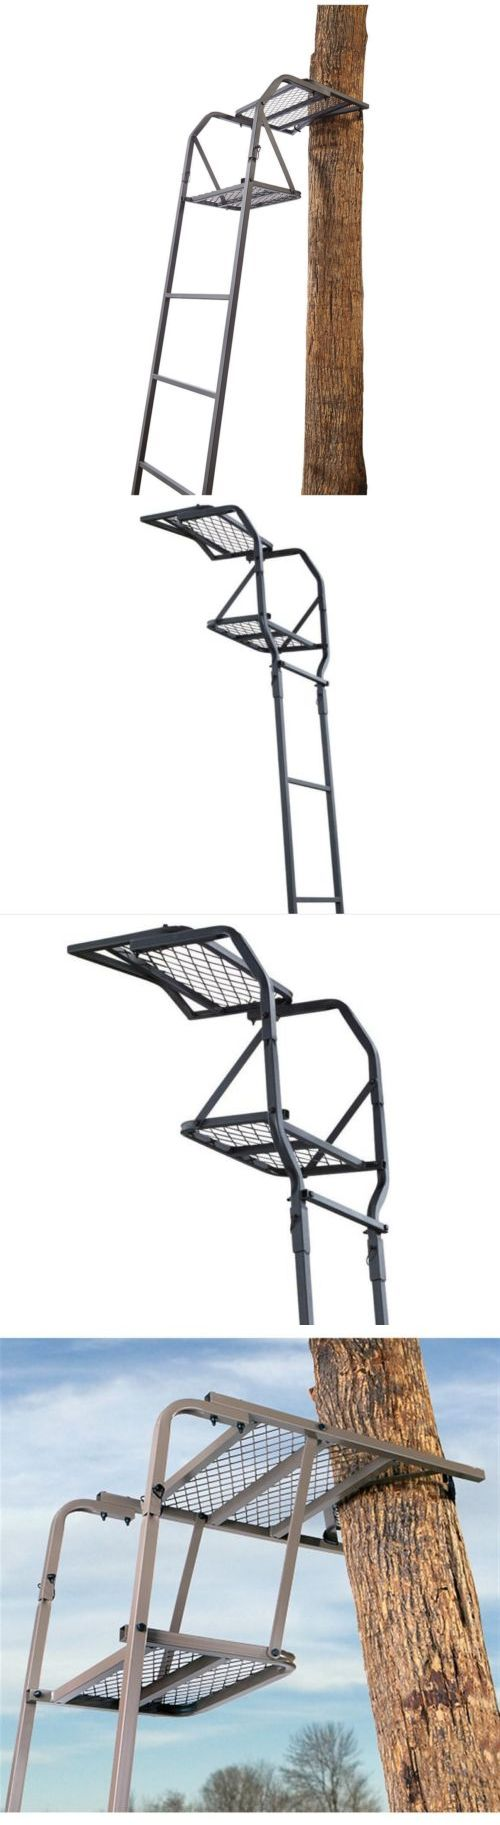 Tree Stands 52508: New 15 Hunting Climbing Ladder Tree Stand Treestand Man Seat Bow Deer Game Hunt -> BUY IT NOW ONLY: $69.97 on eBay!